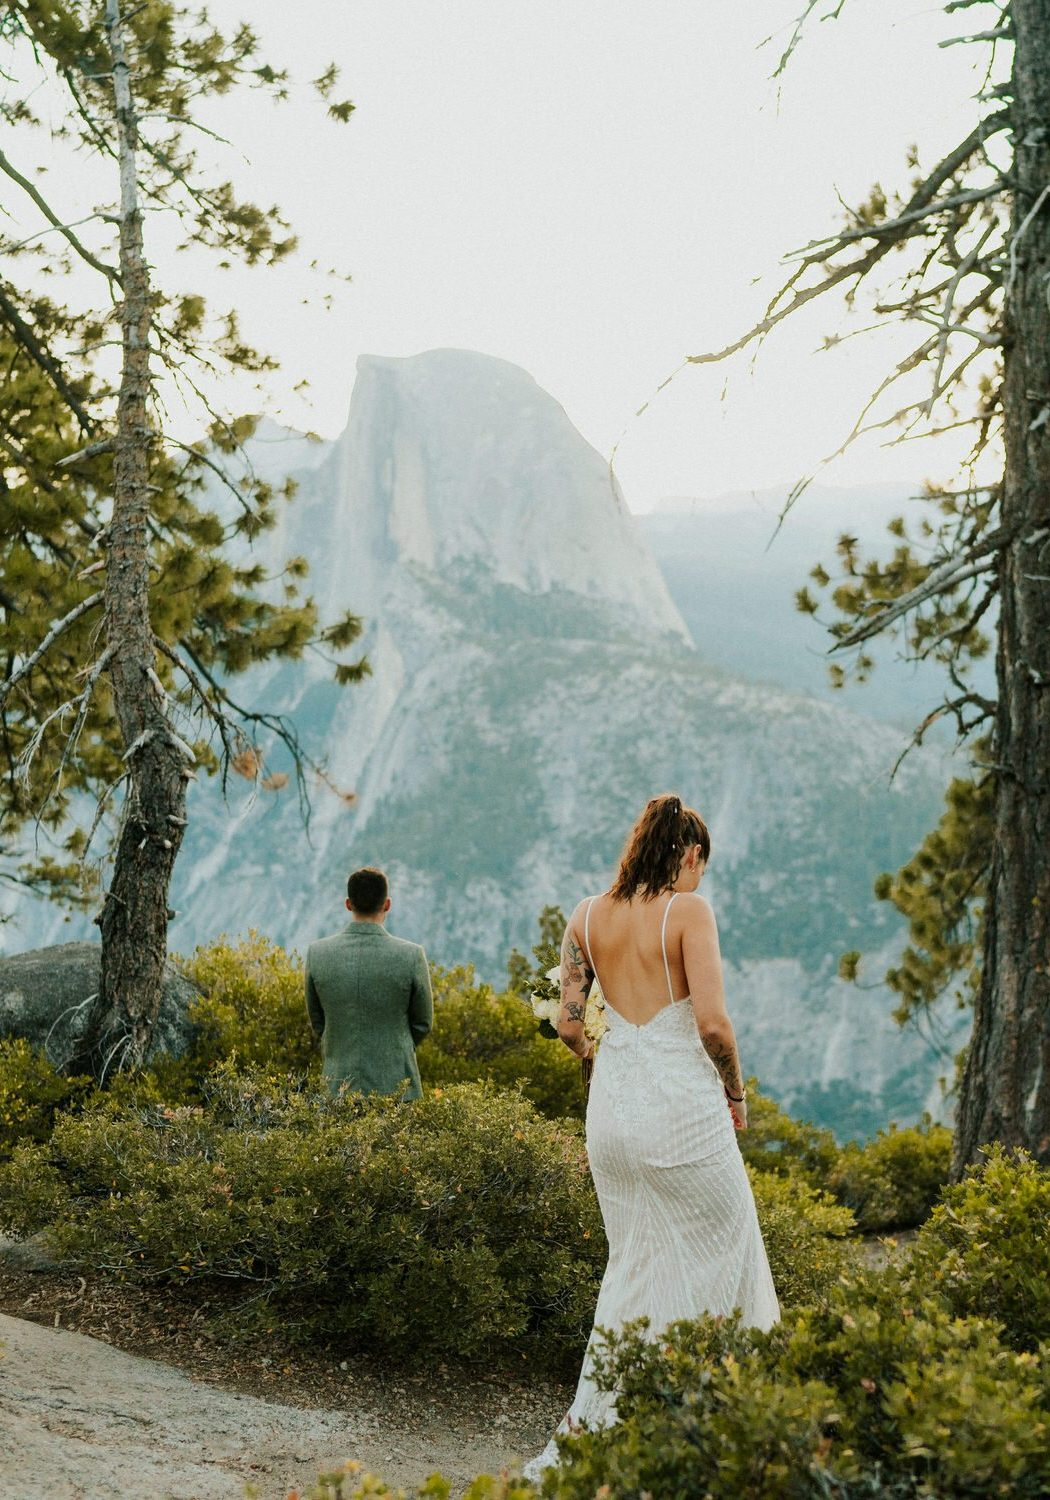 7 Things To Consider When Eloping